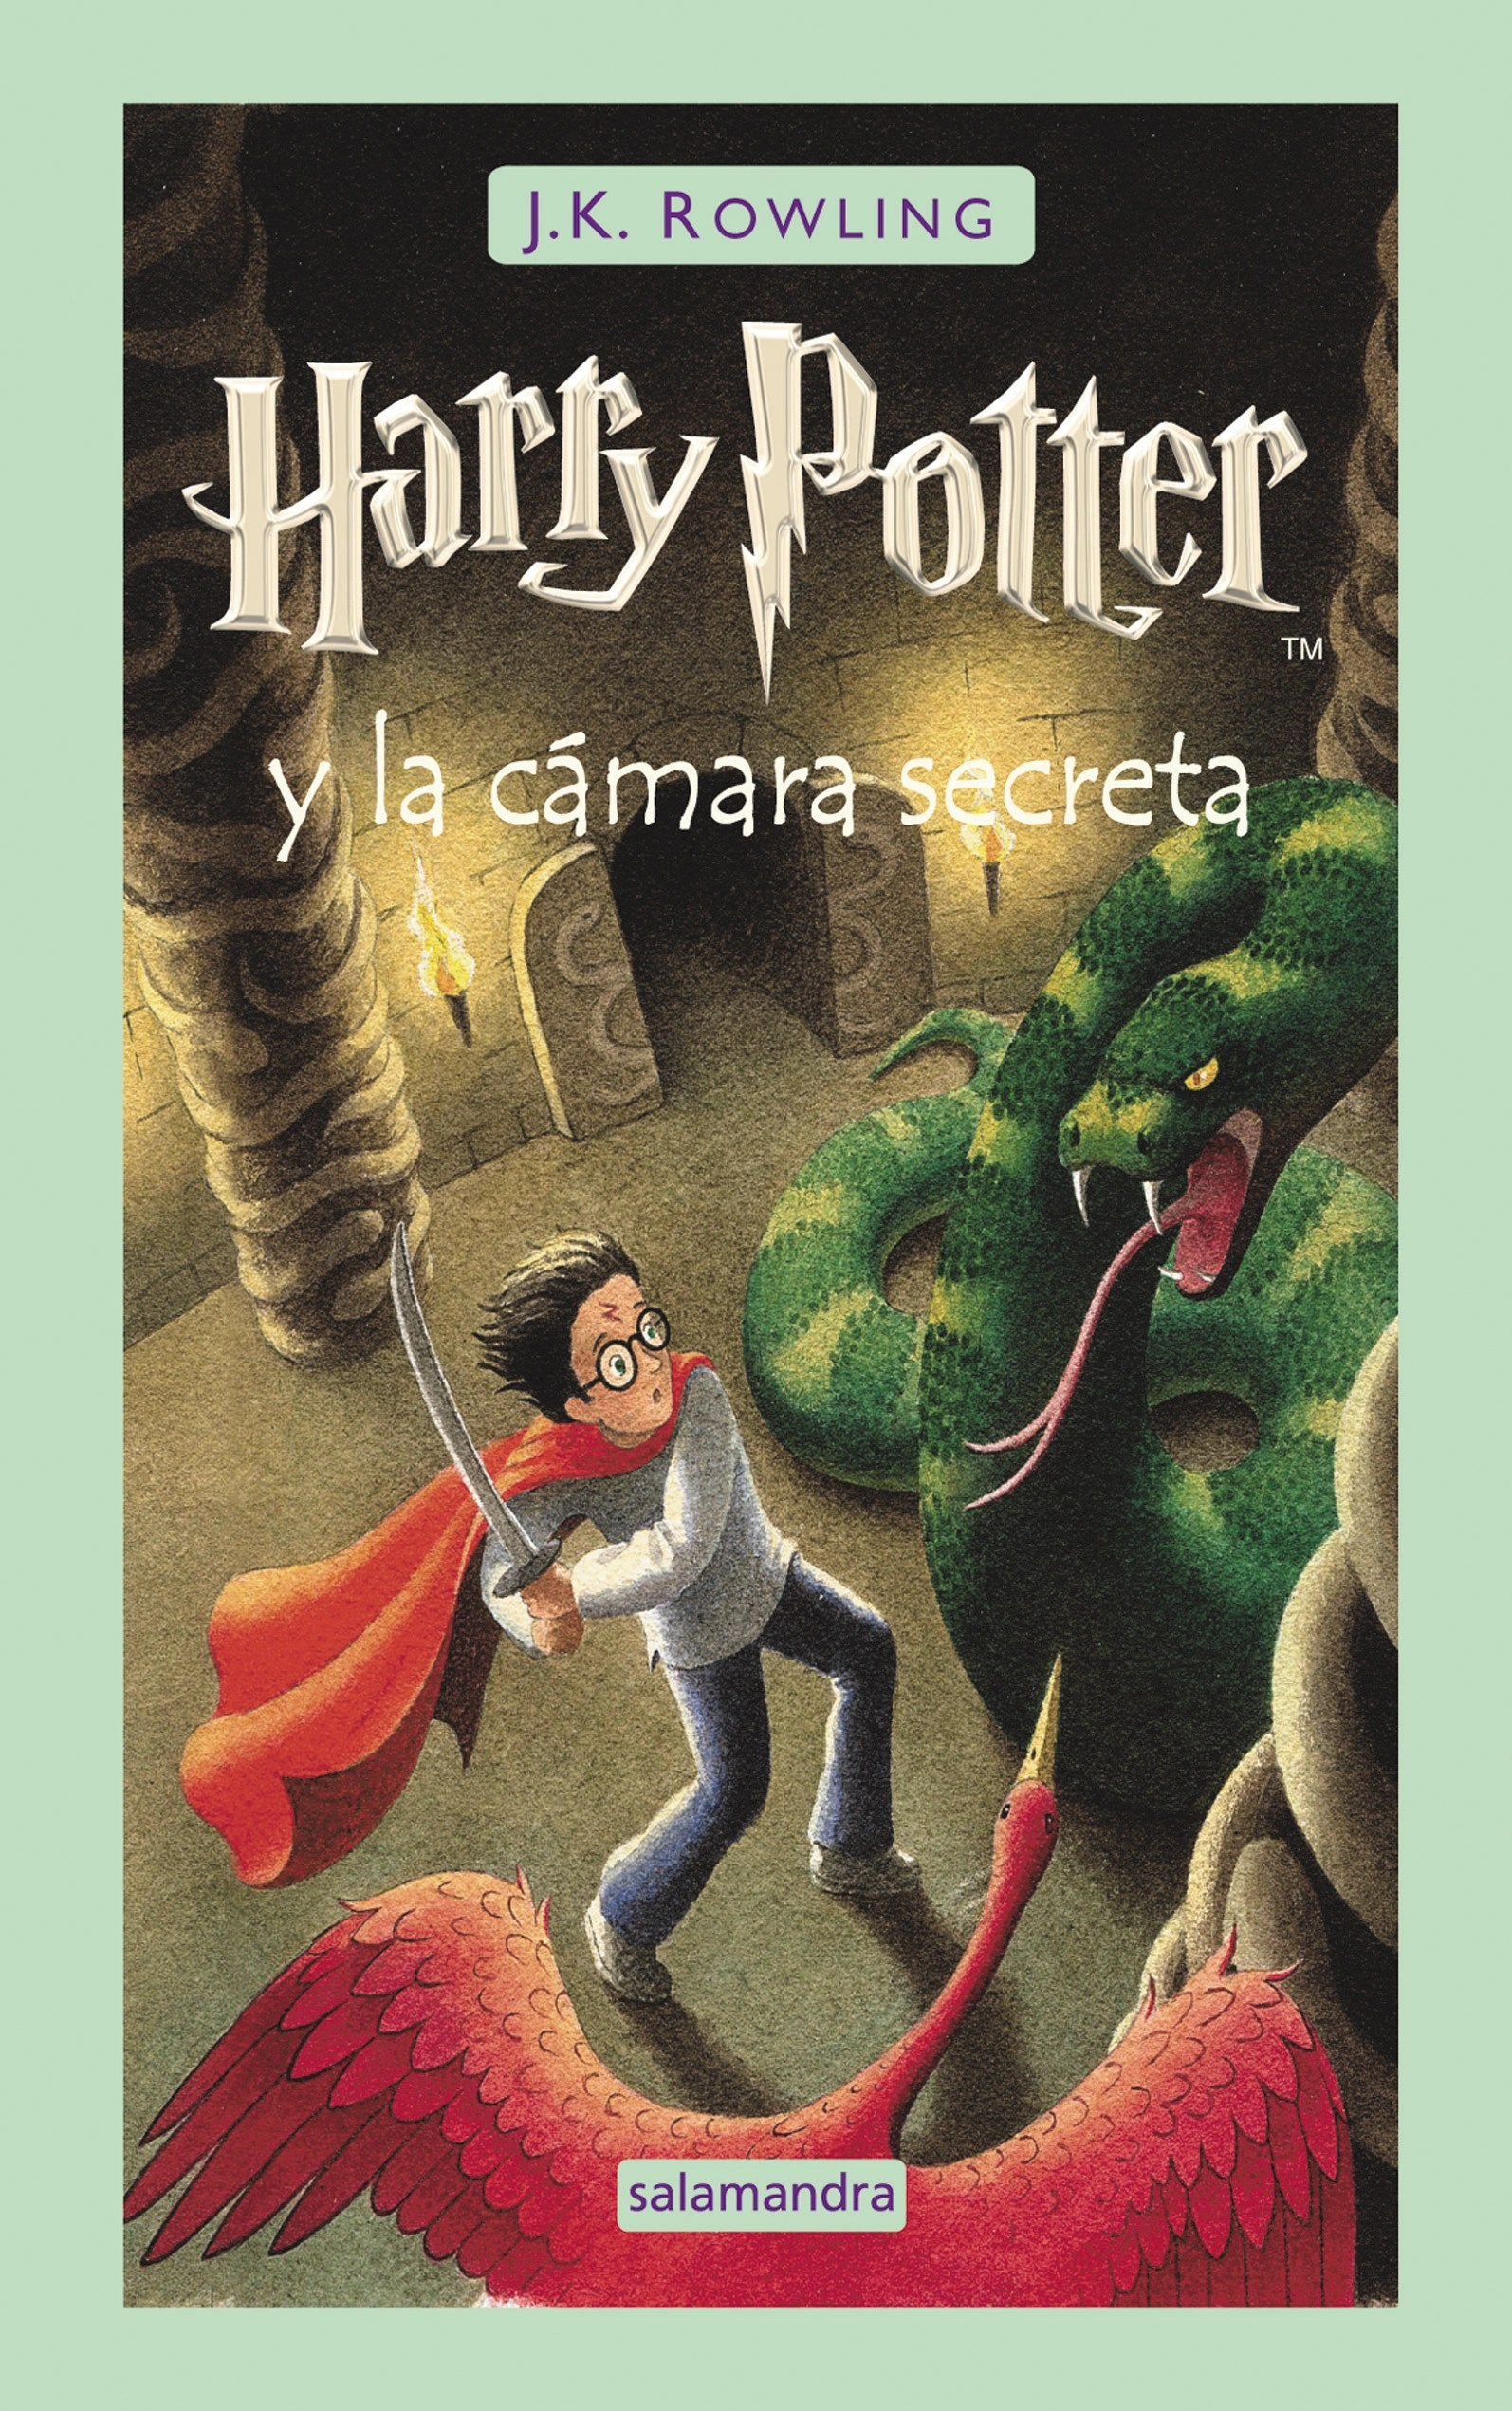 Paginas De Los Libros De Harry Potter Harry Potter Y La Cámara Secreta Harry Potter Wiki